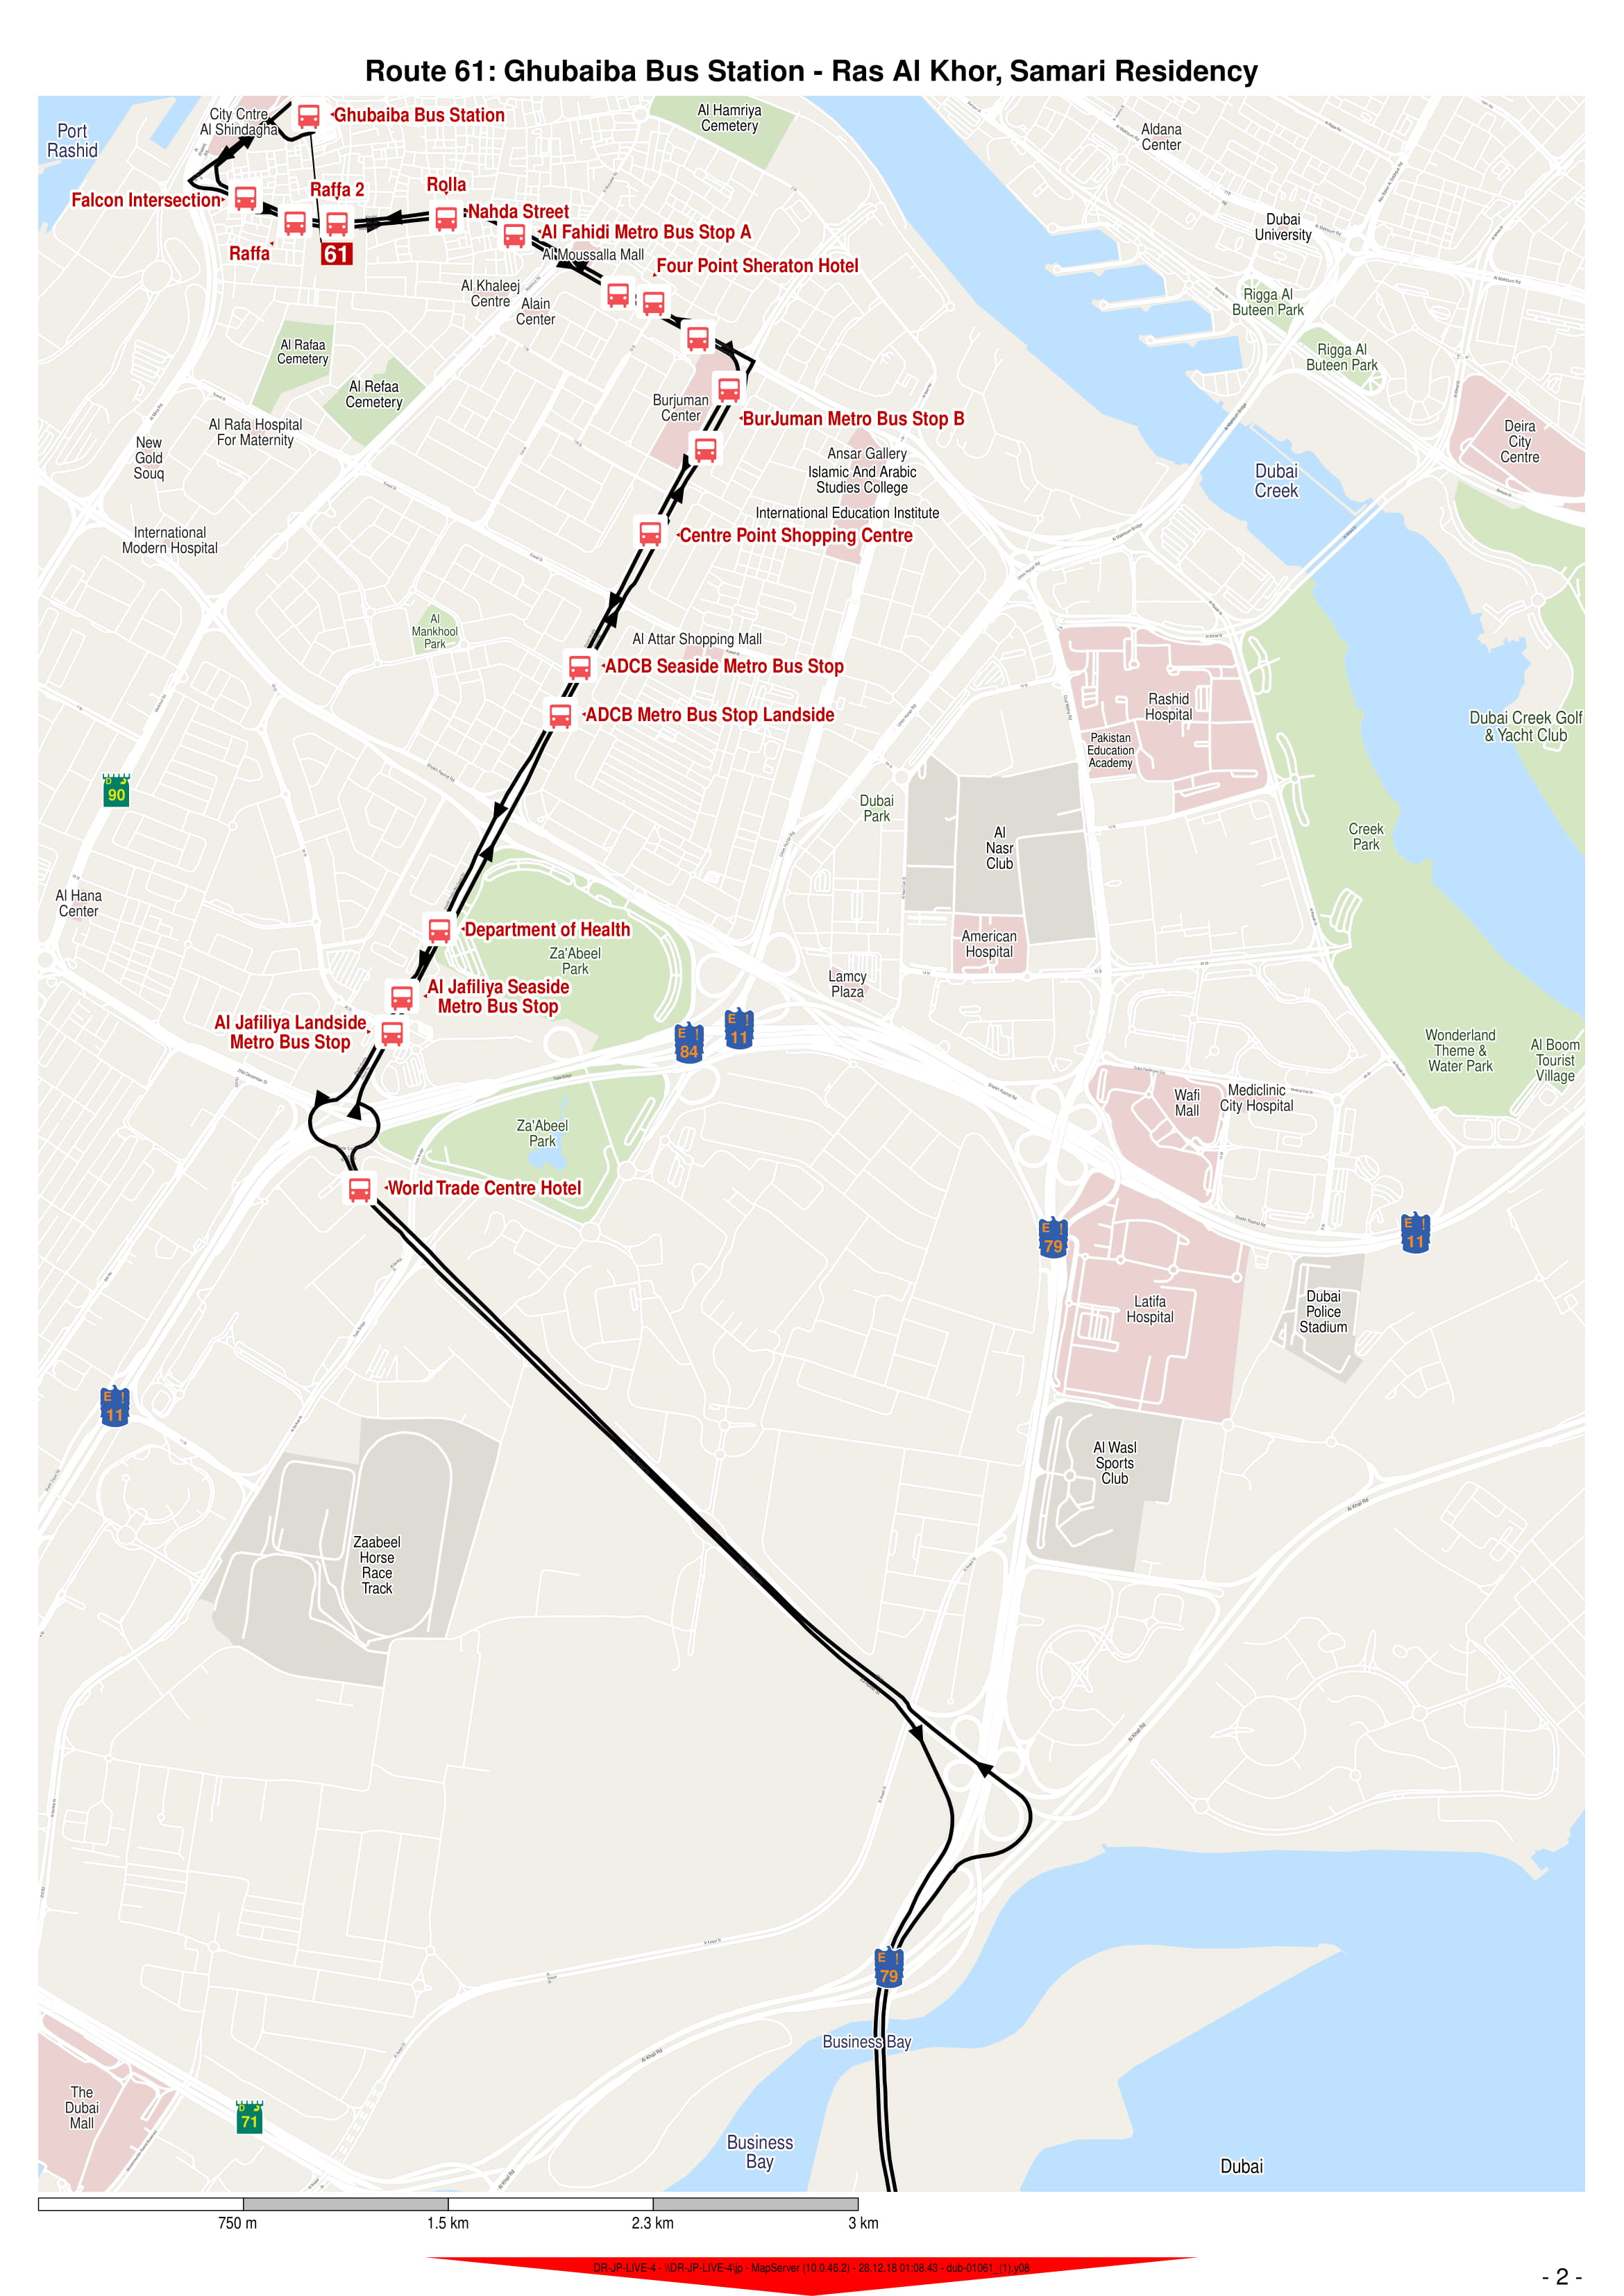 61 Bus Route in Dubai - Time Schedule, Stops and Maps - Your